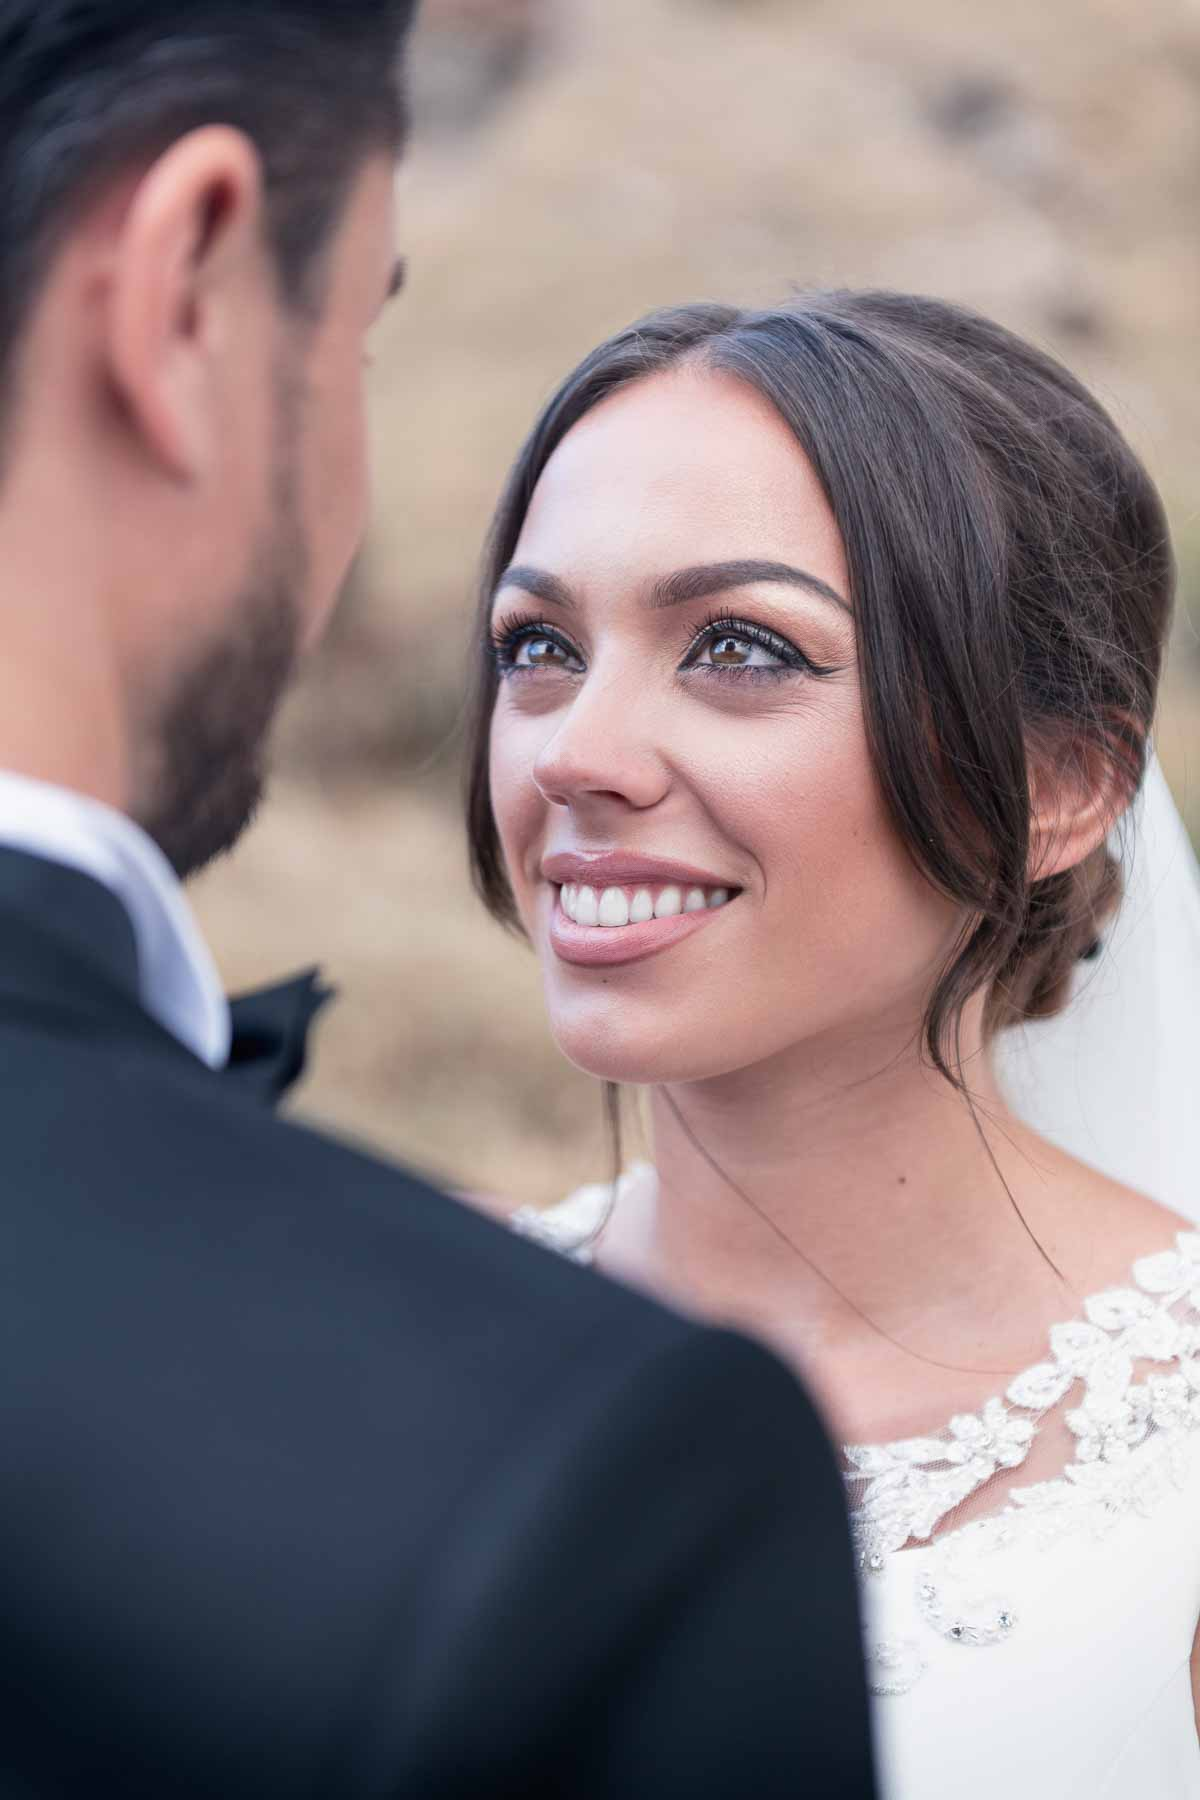 Bride is smiling at the groom